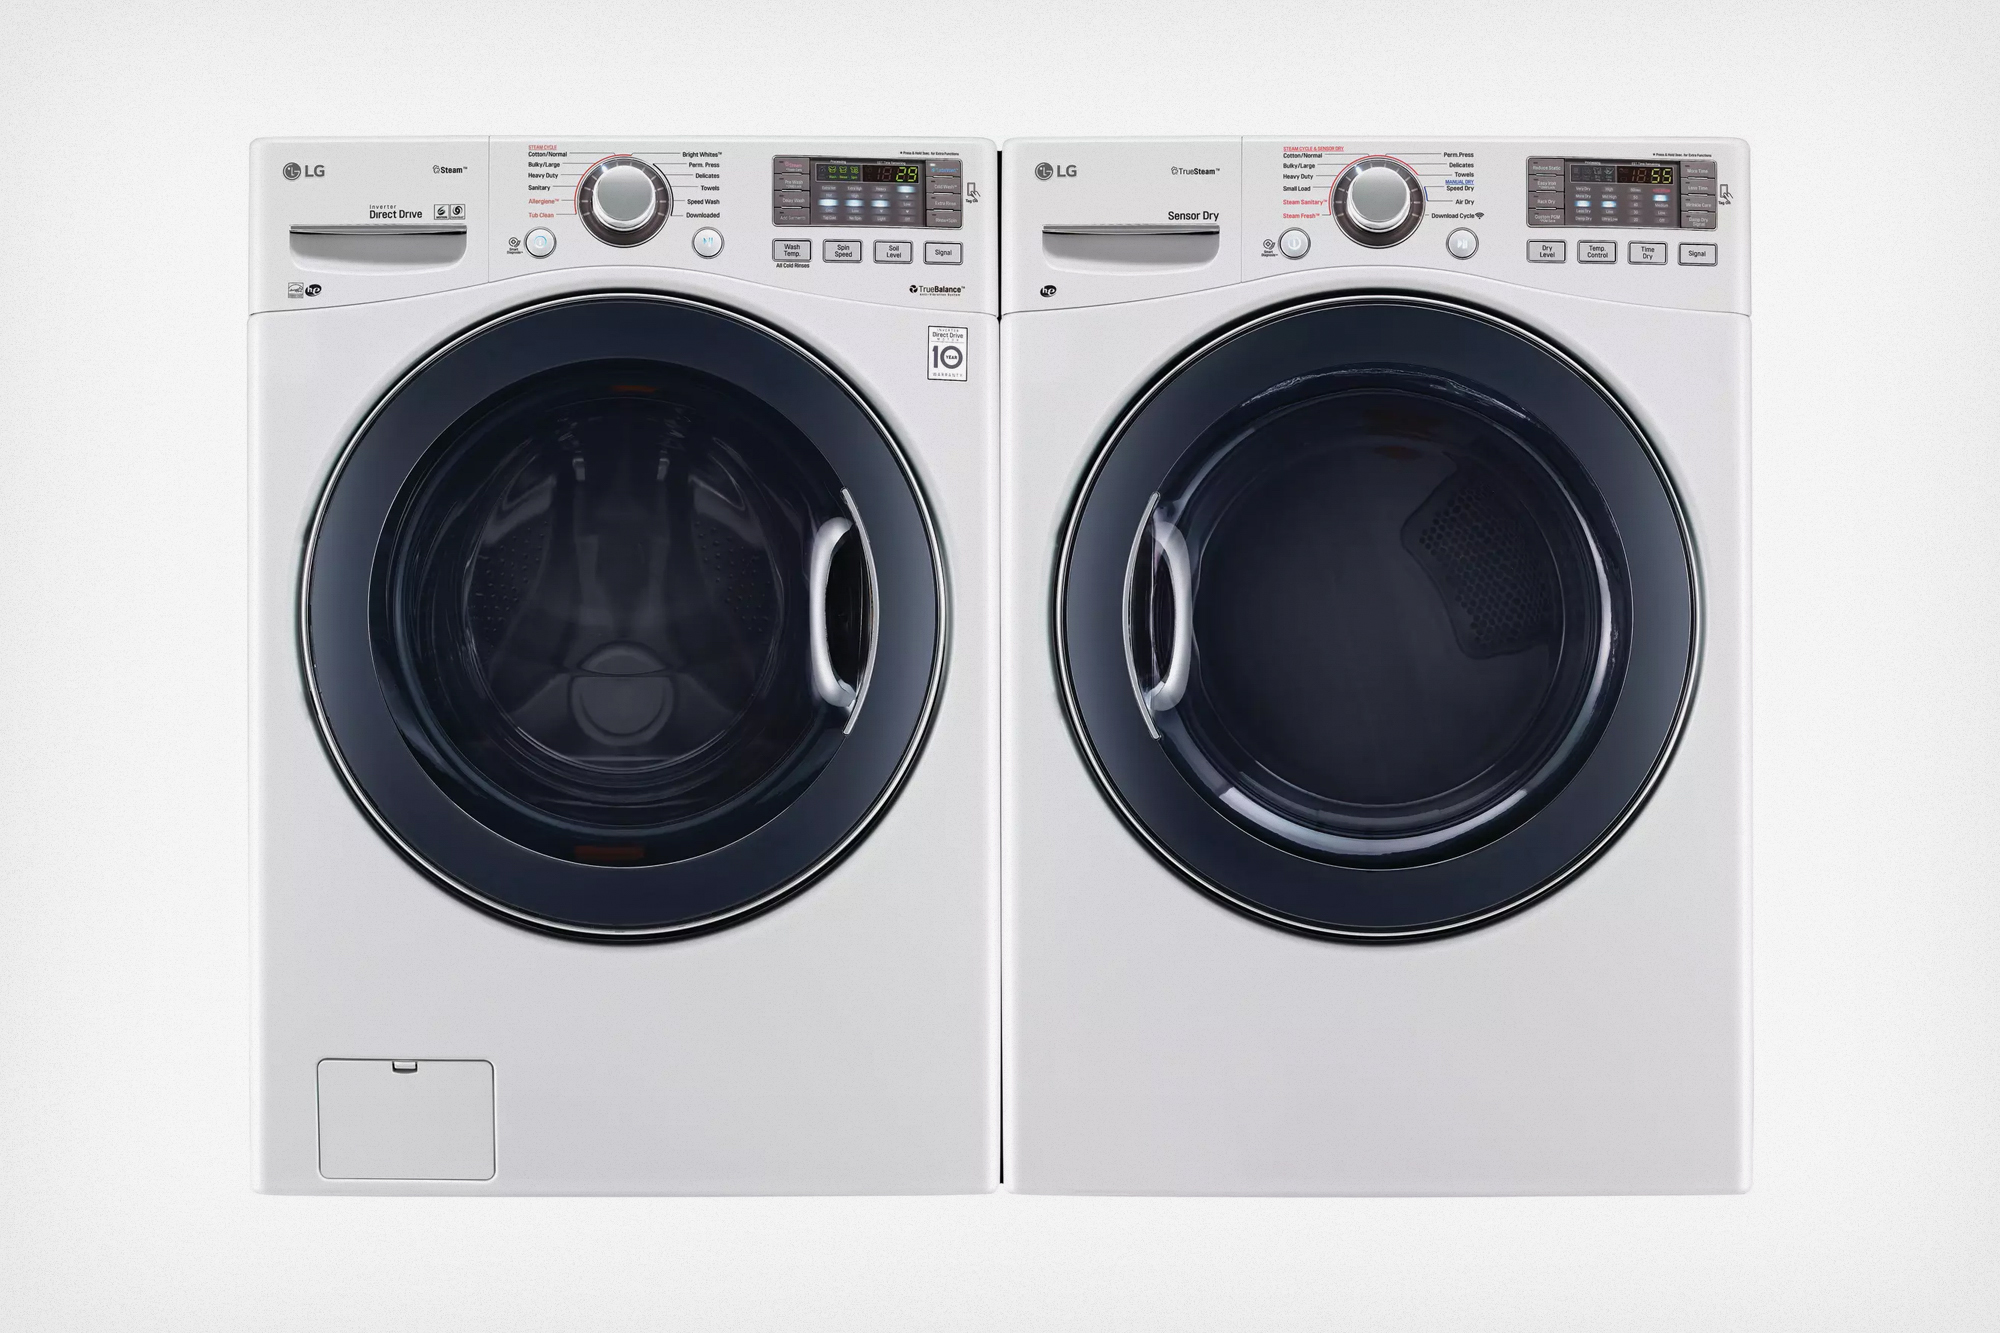 The Best Washing Machines And Their Matching Dryers